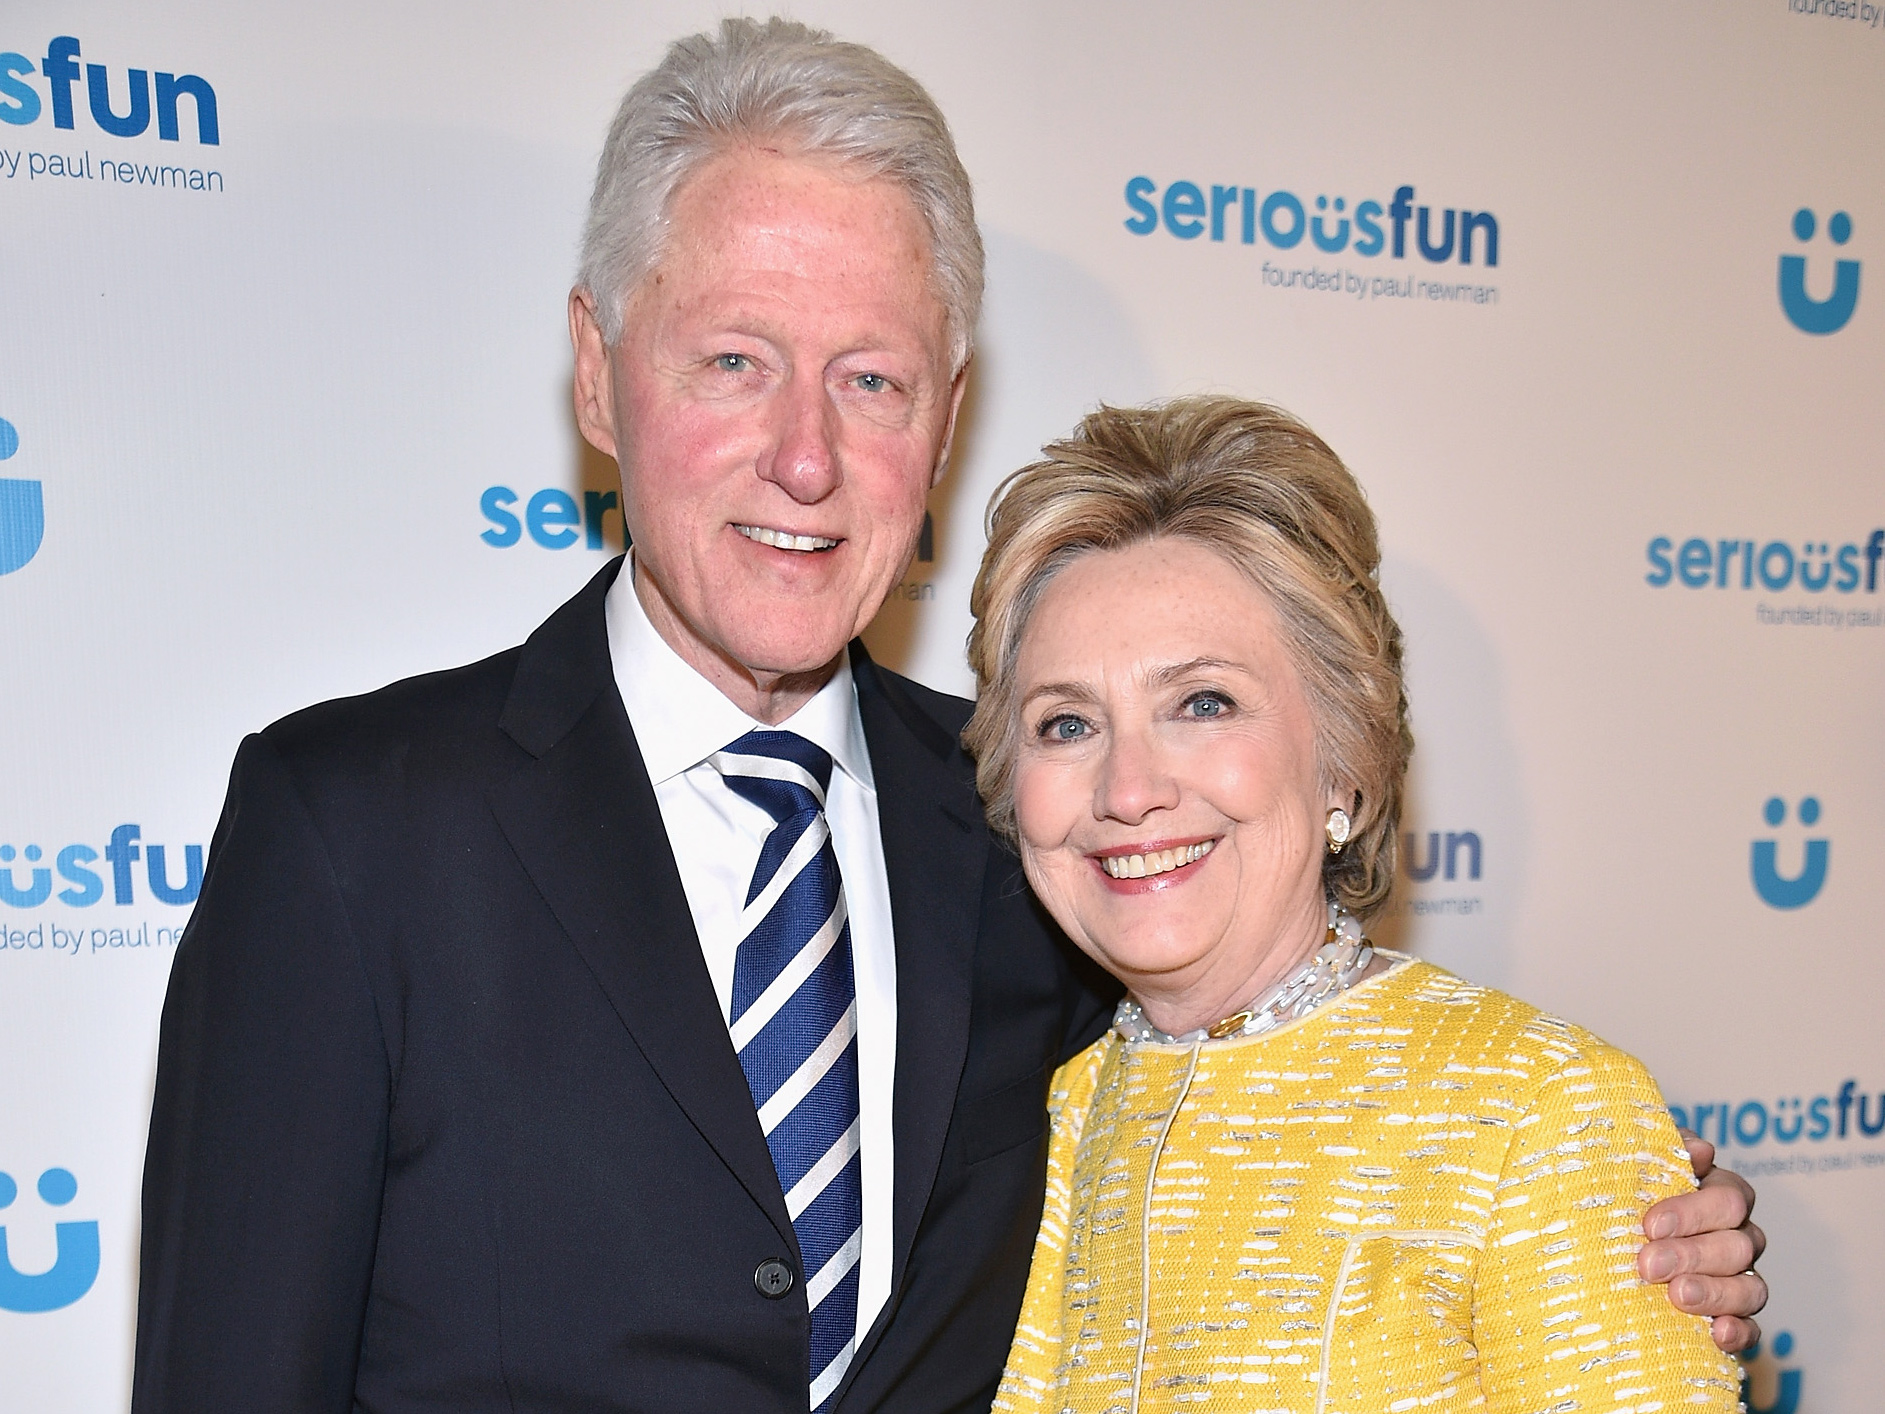 Fire Reported at Hillary and Bill Clinton's House in Chappaqua, New York